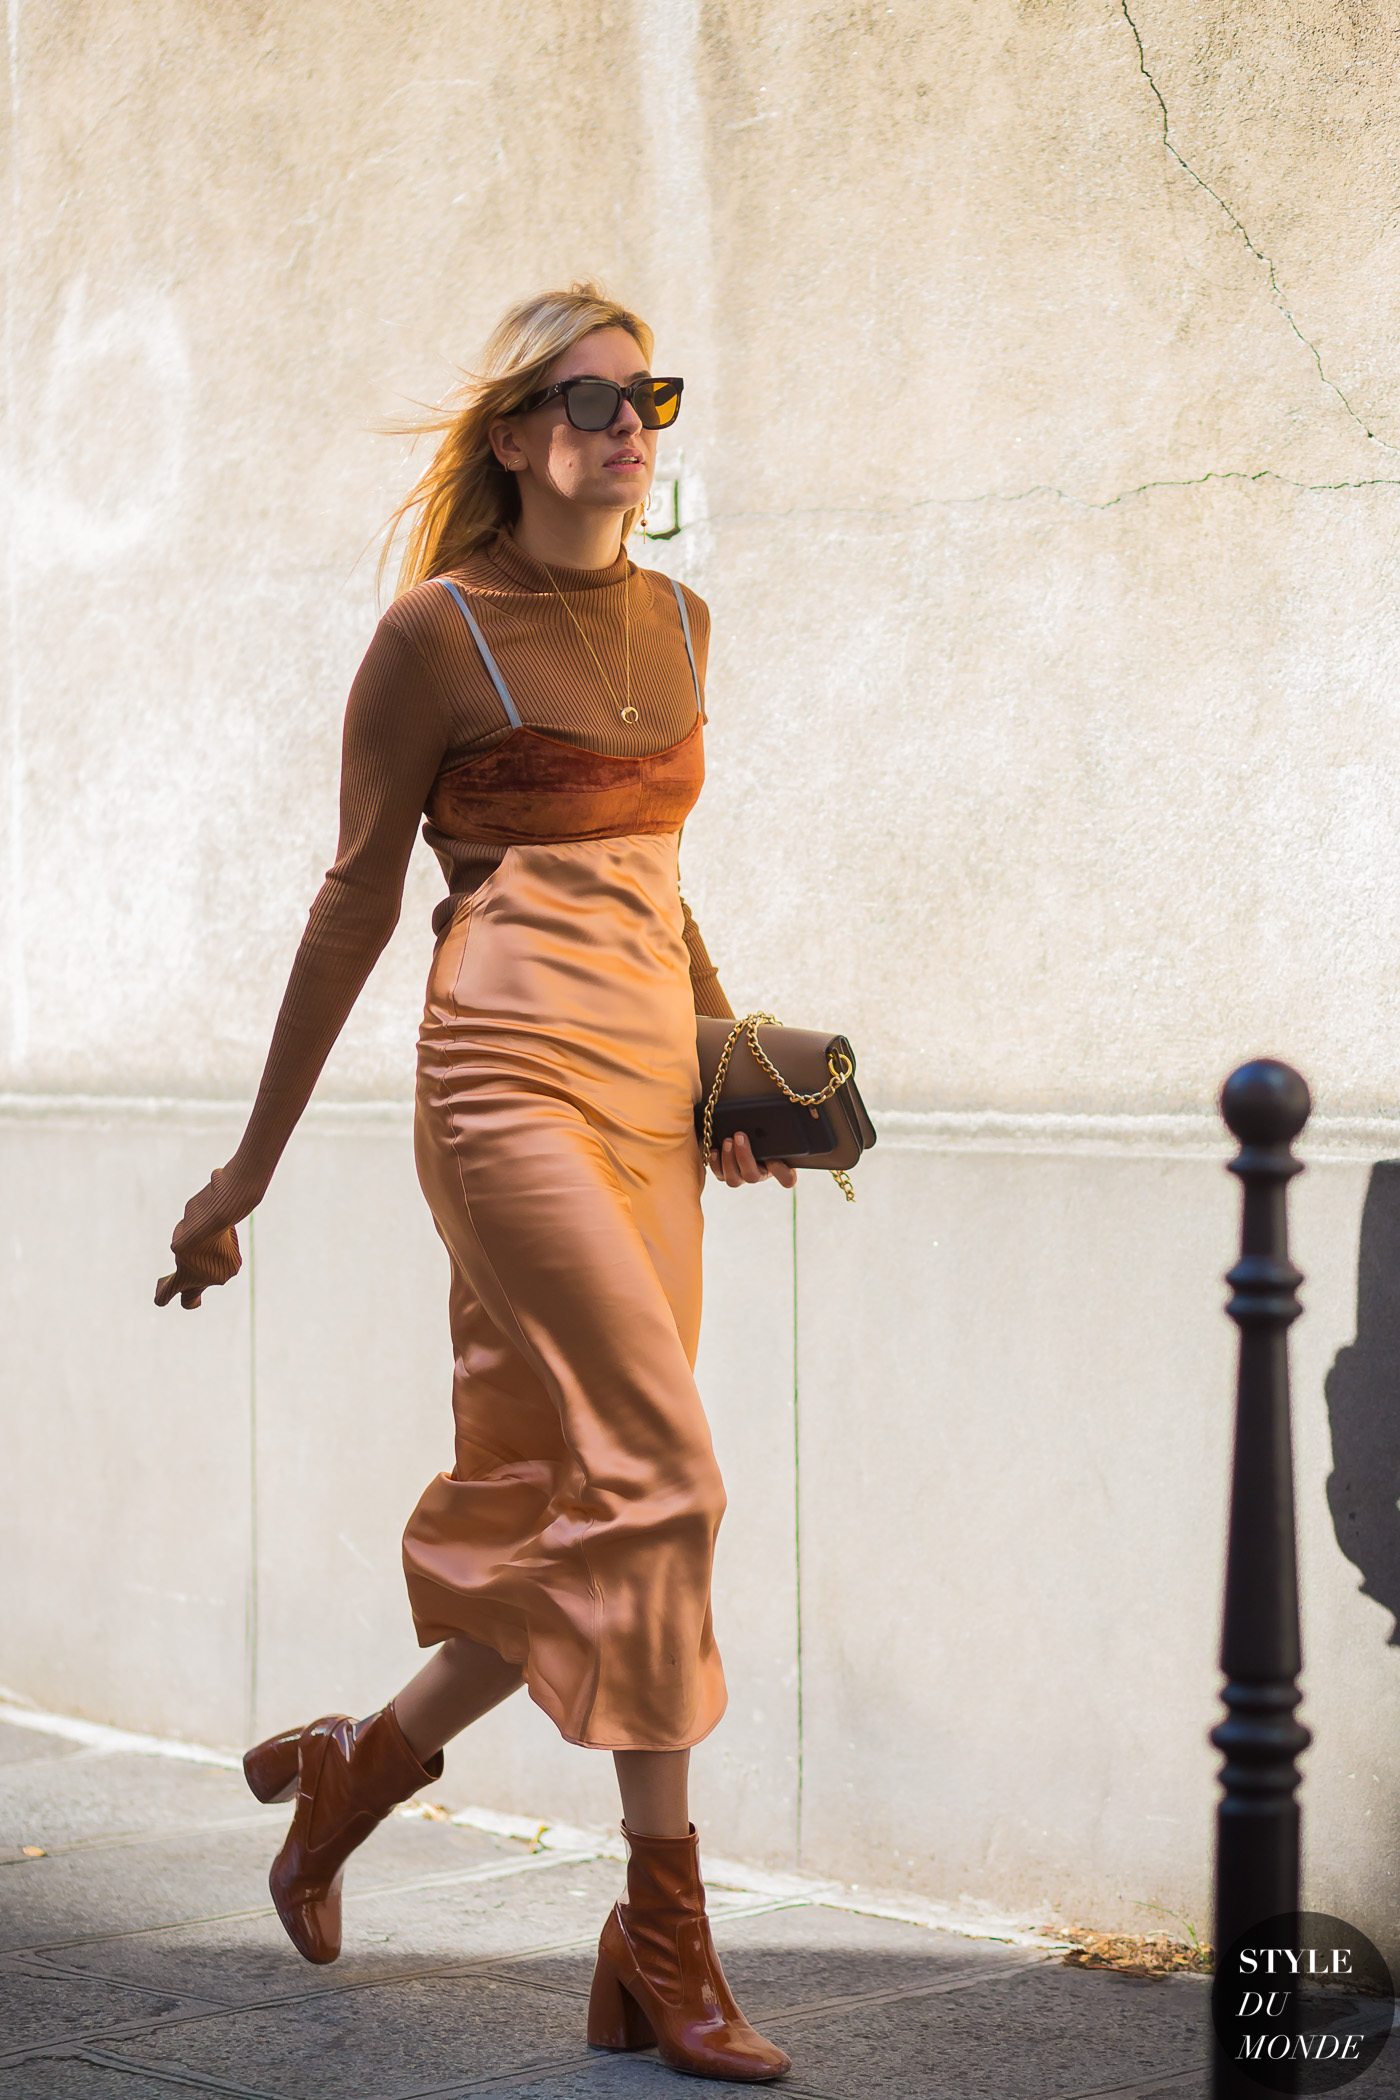 camille-charriere-by-styledumonde-street-style-fashion-photography